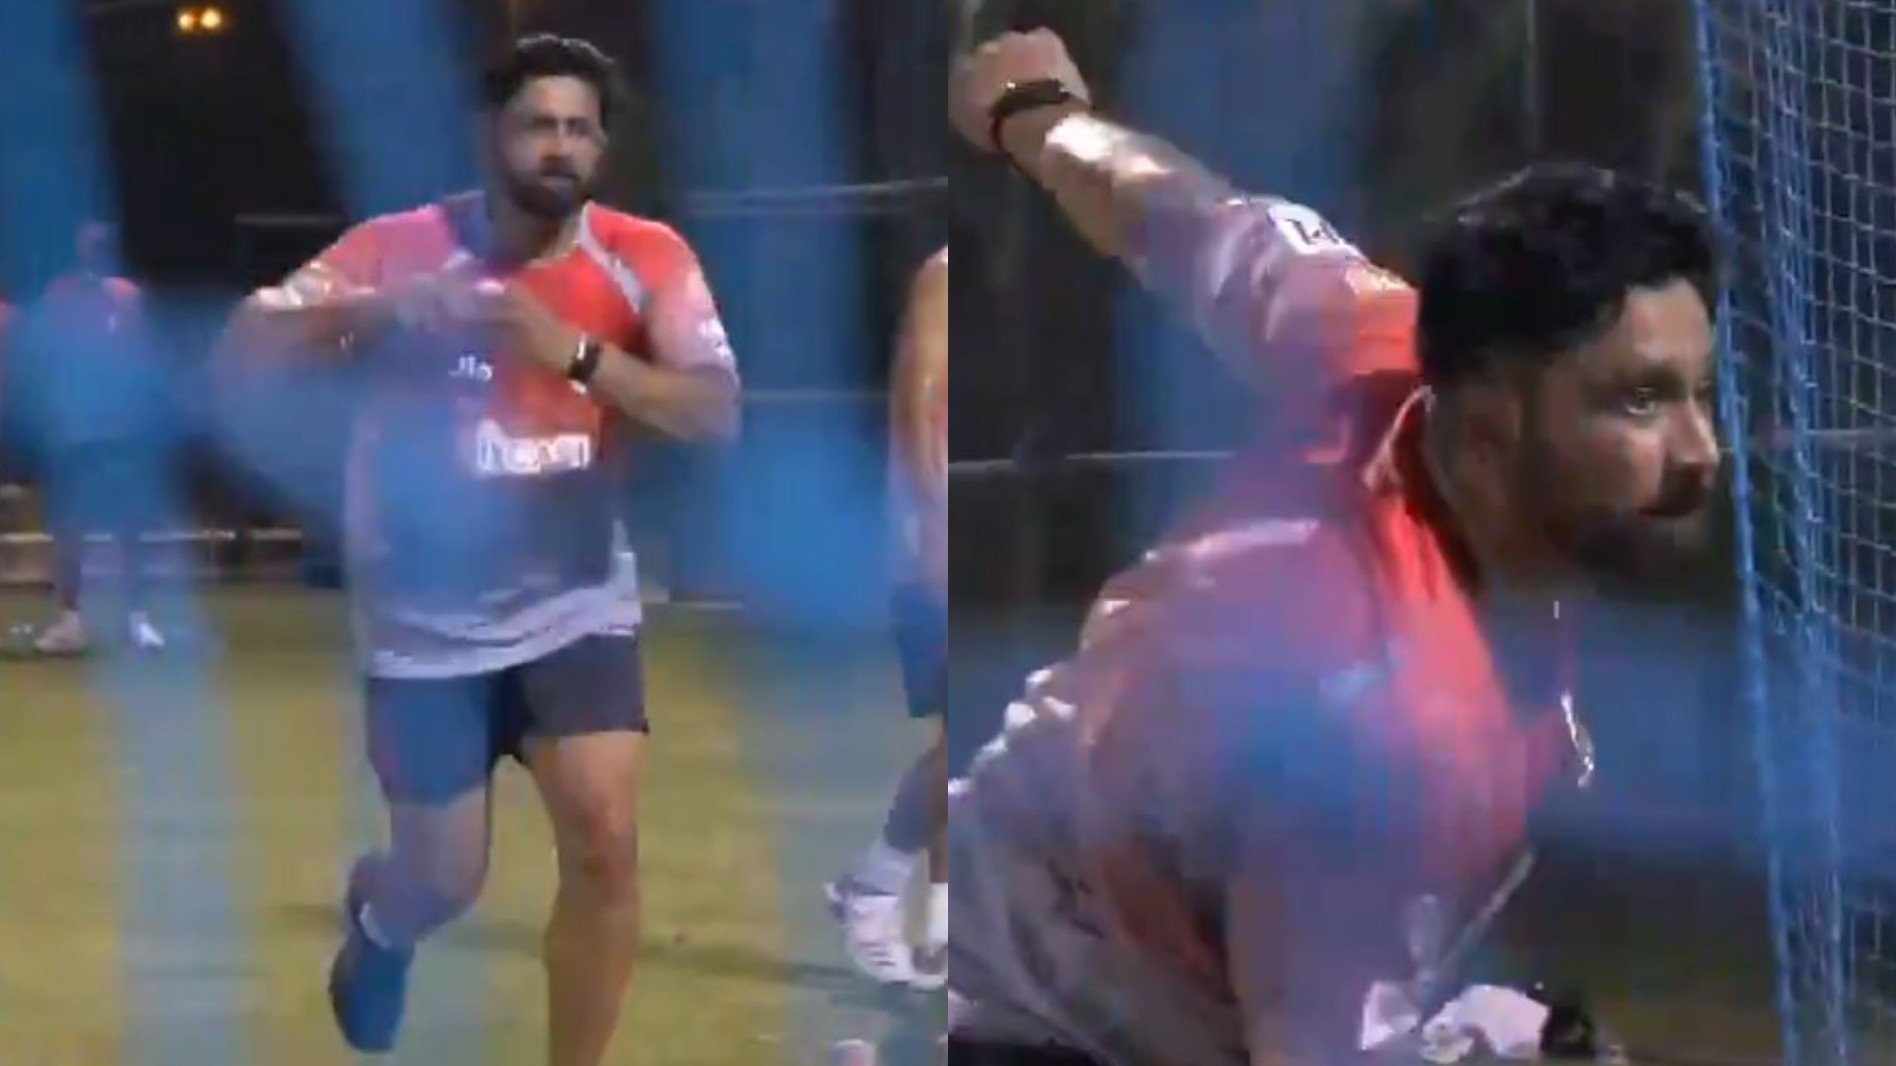 IPL 2020: WATCH- Nostalgia ensues as KXIP coach Anil Kumble rolls his arm over during nets